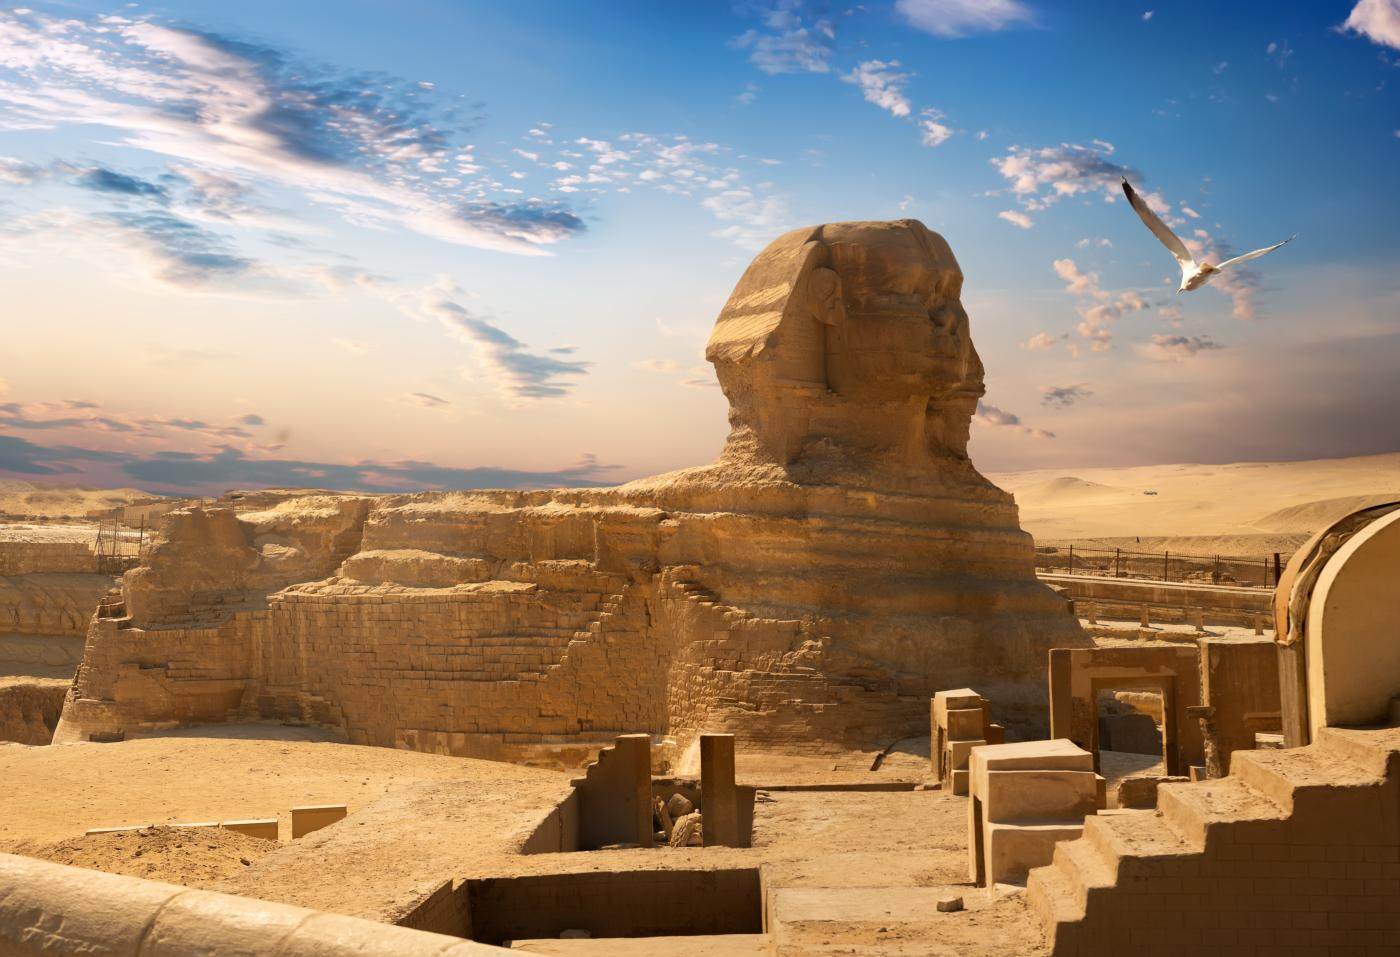 Le Grand Sphinx de Gizeh